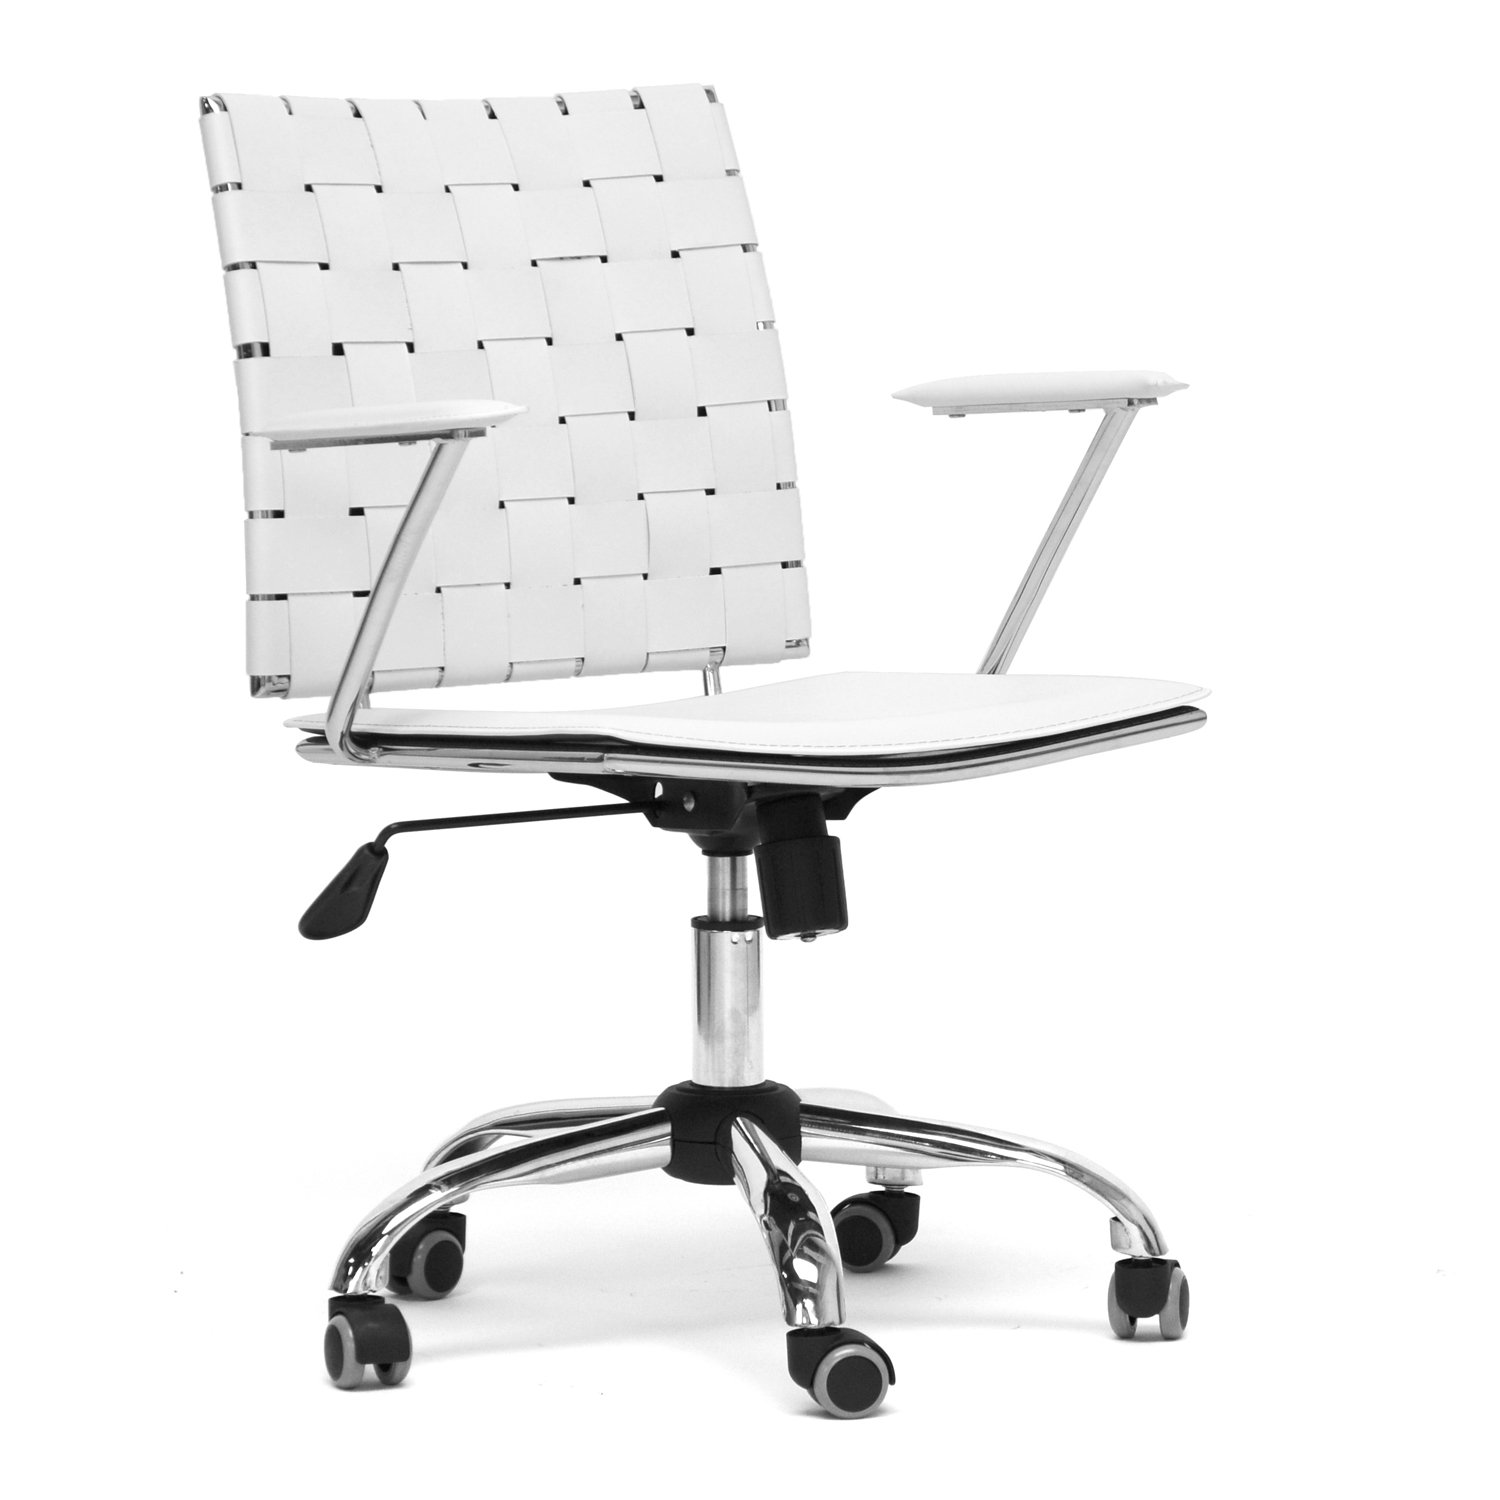 Amazon.com: Baxton Studio Vittoria White Leather Modern Office ...